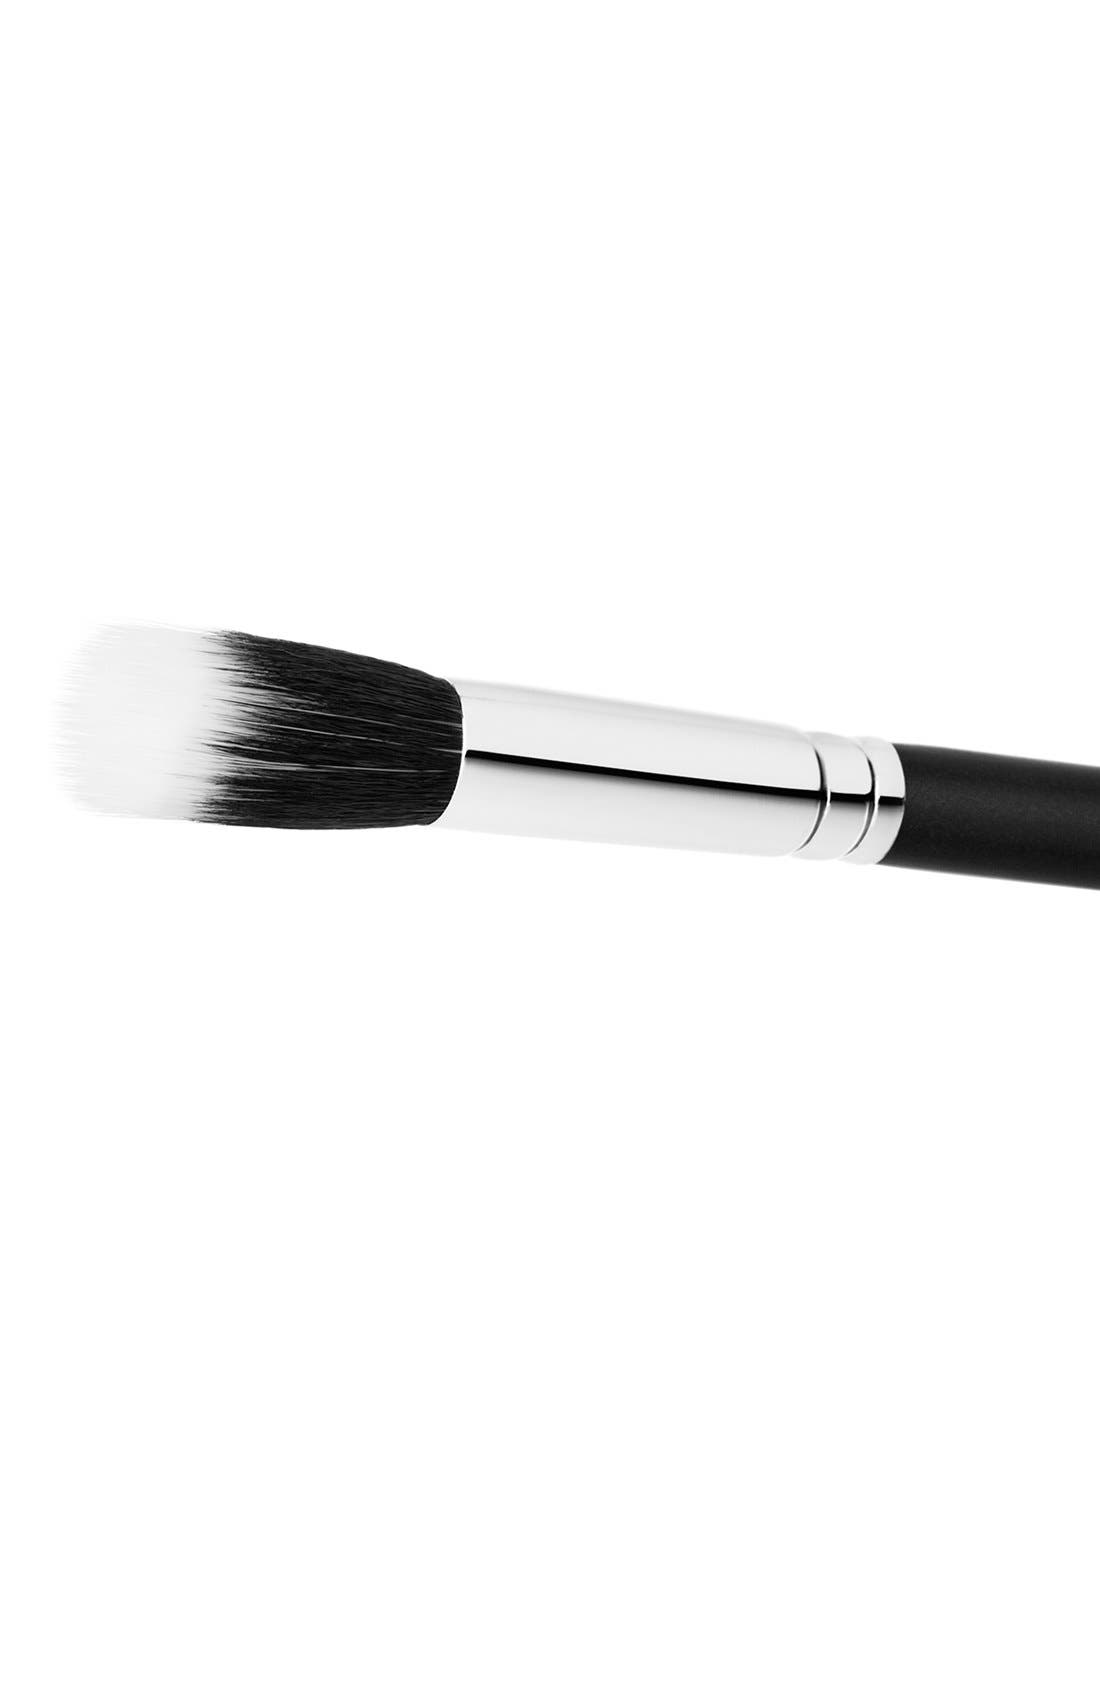 MAC 188 Small Duo Fibre Face Brush,                             Alternate thumbnail 4, color,                             000